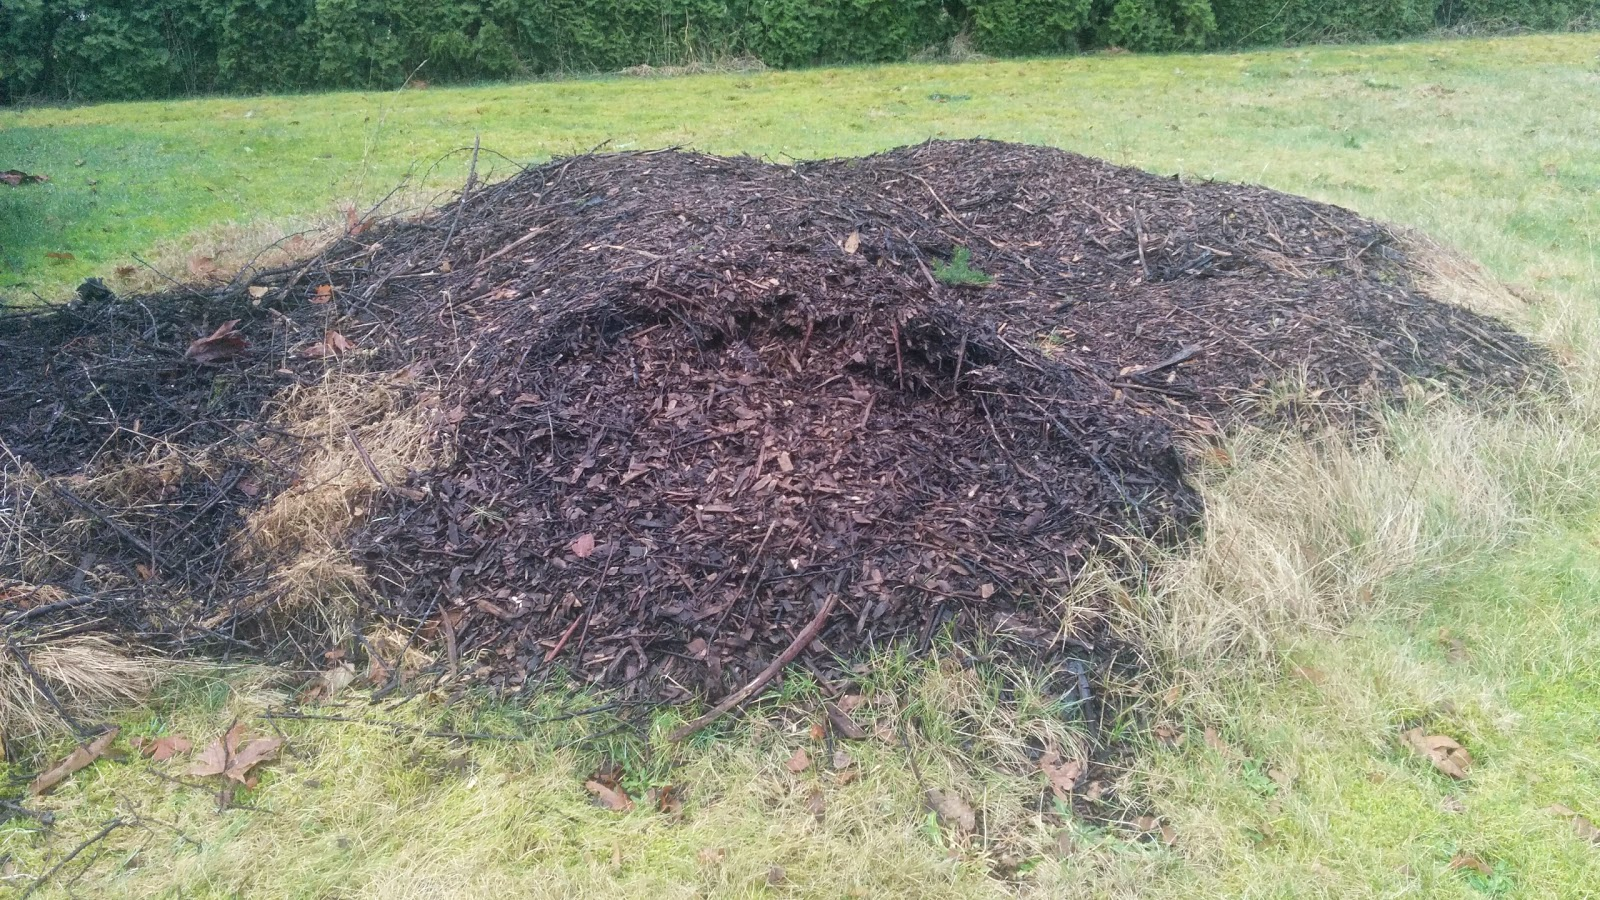 A pile of wood chips and small sticks that will make excellent garden bed cores.